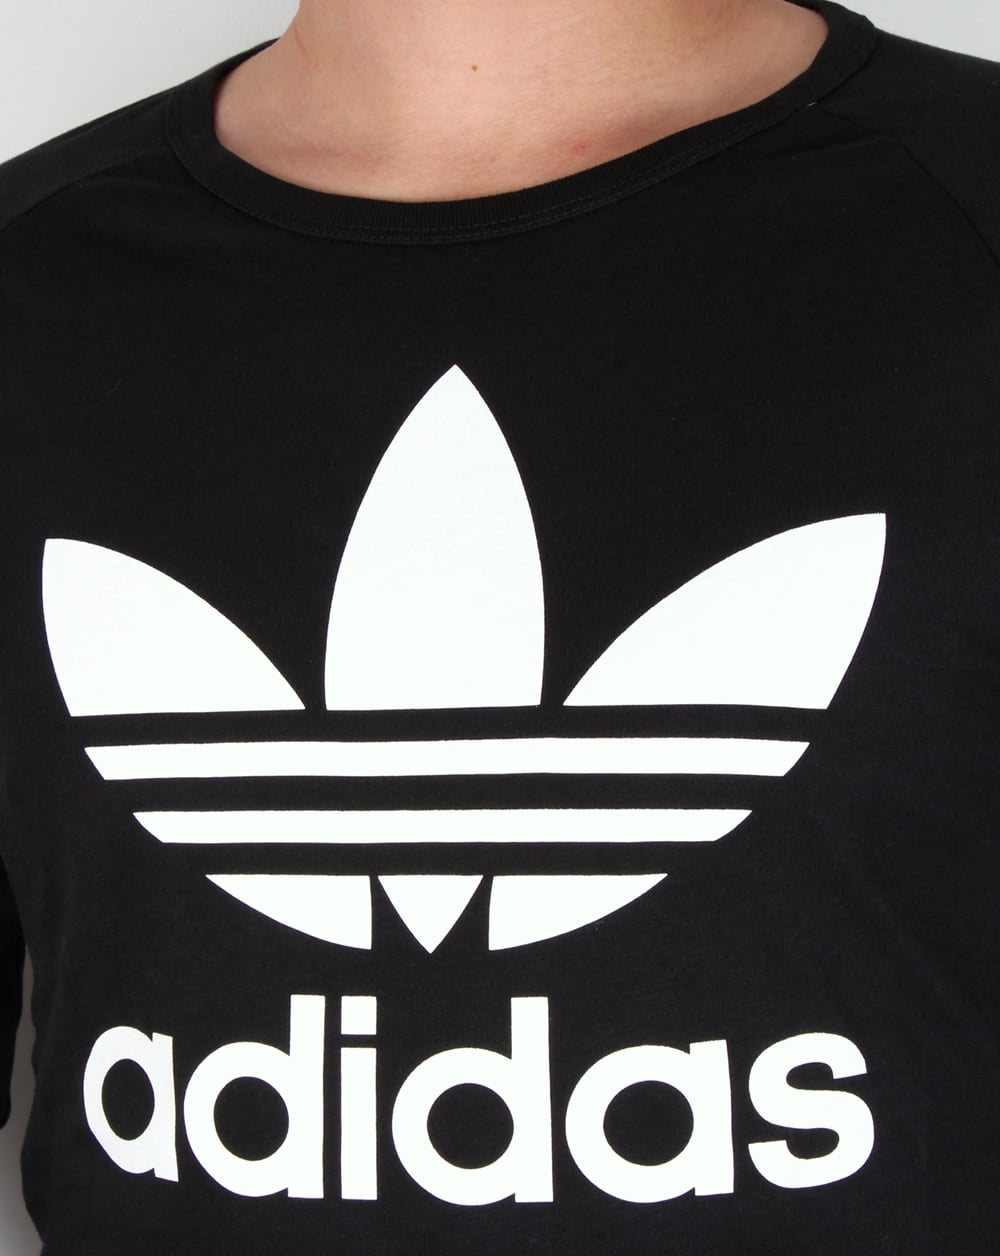 Adidas originals trefoil long sleeve t shirt black tee mens for Adidas long sleeve t shirt with trefoil logo